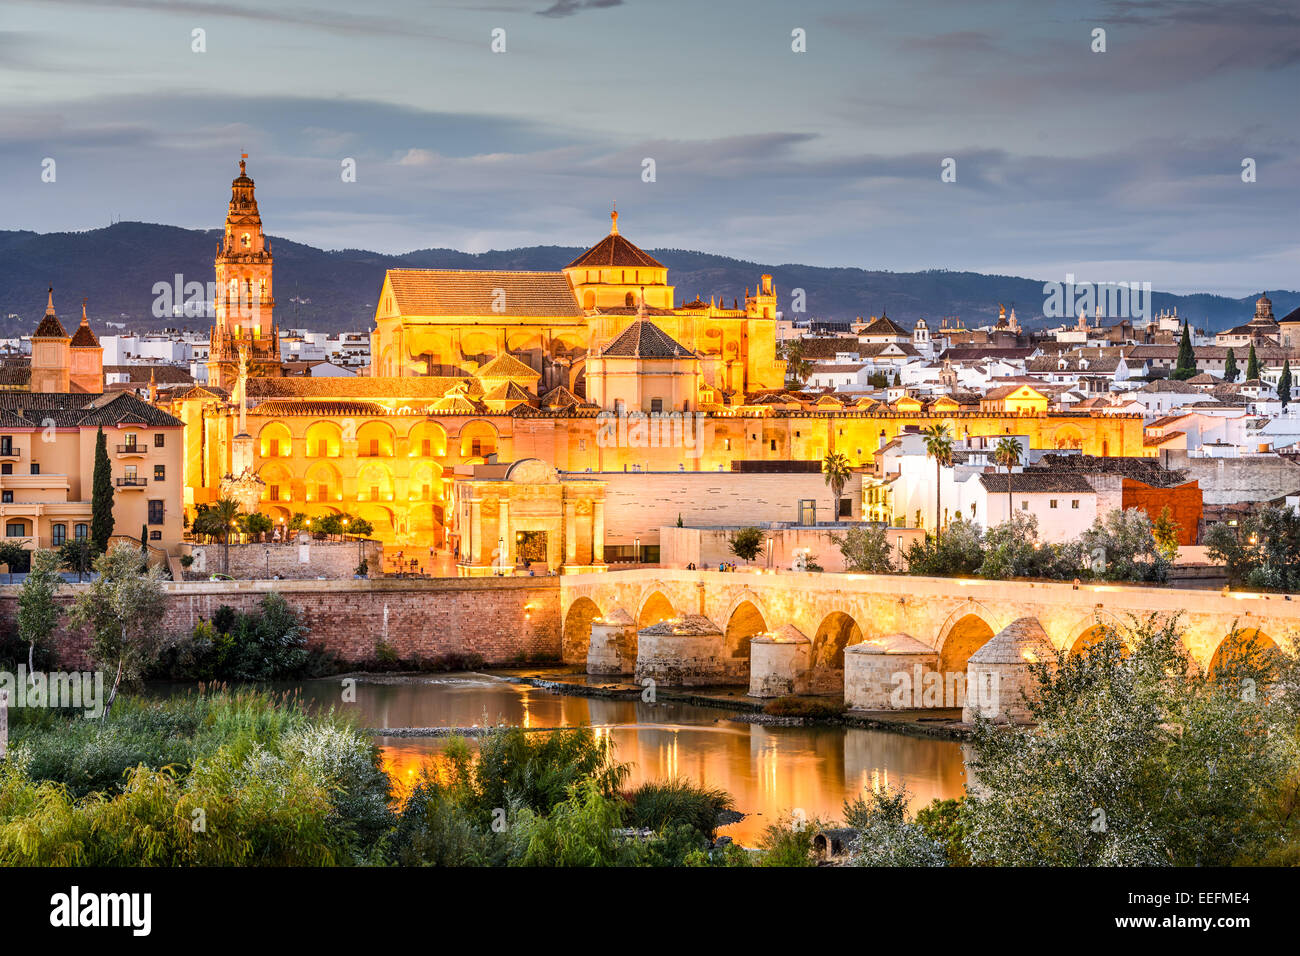 Cordoba, Spain at the Roman Bridge and Mosque-Cathedral on the Guadalquivir River. - Stock Image